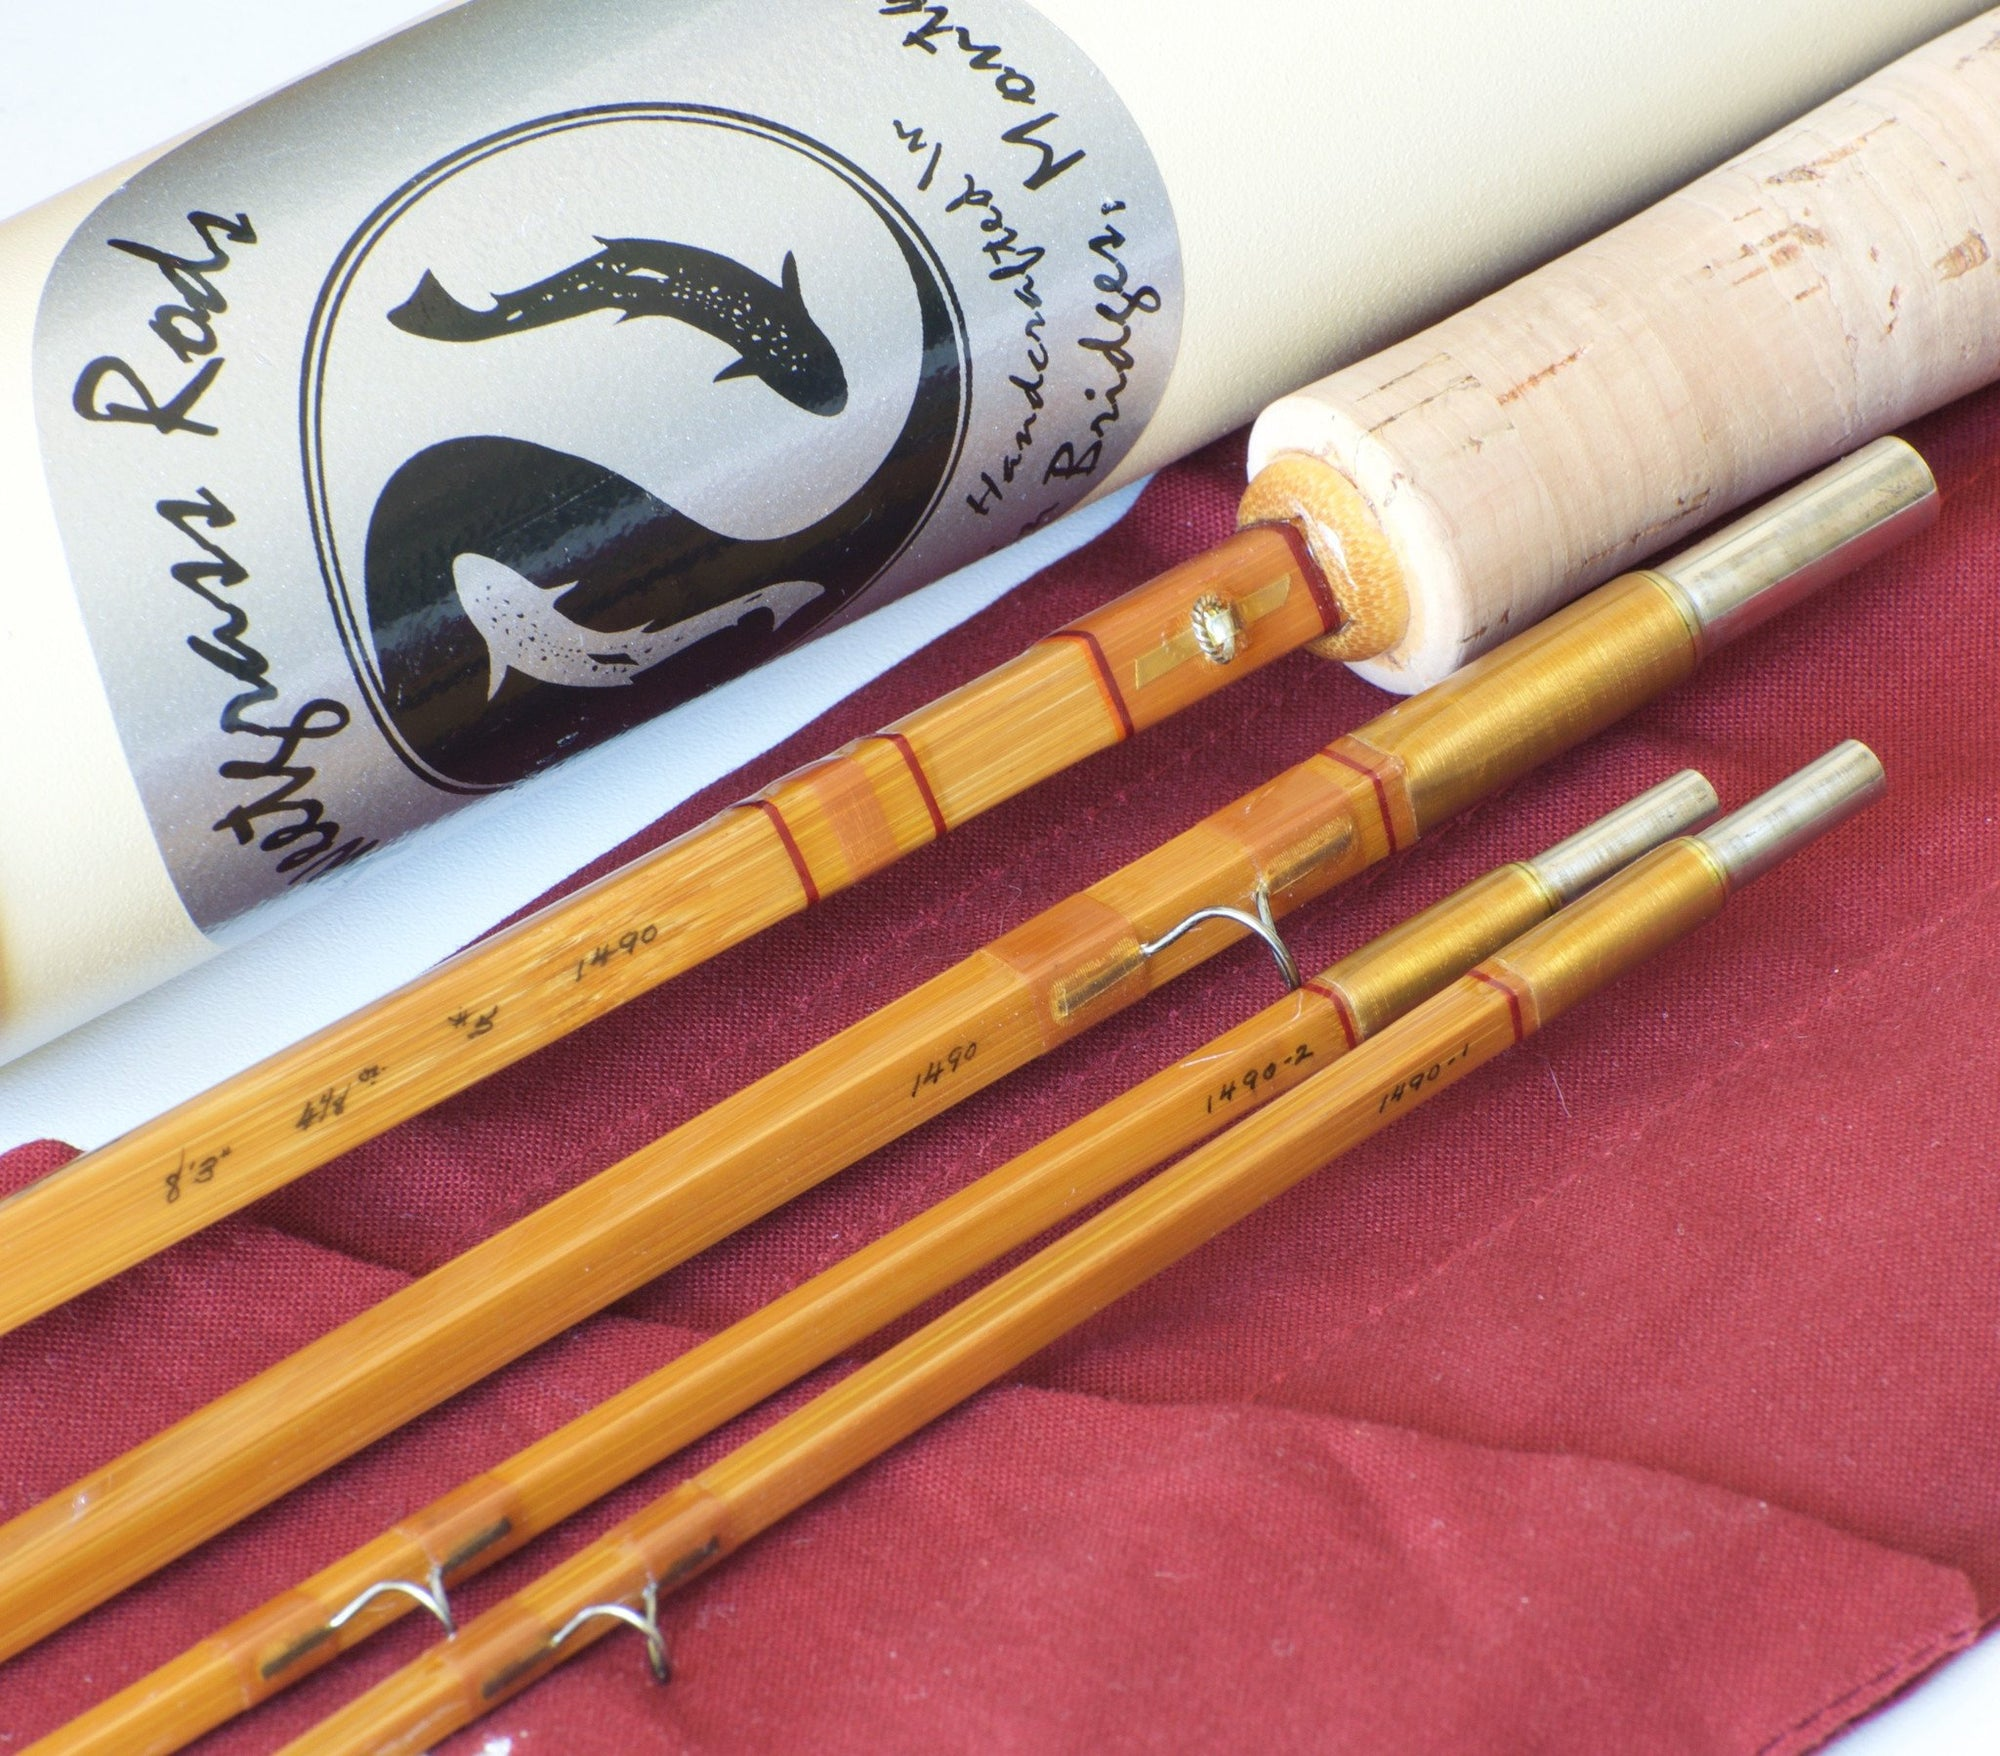 "Sweetgrass Quad Bamboo Rod 8'3"" 5wt"